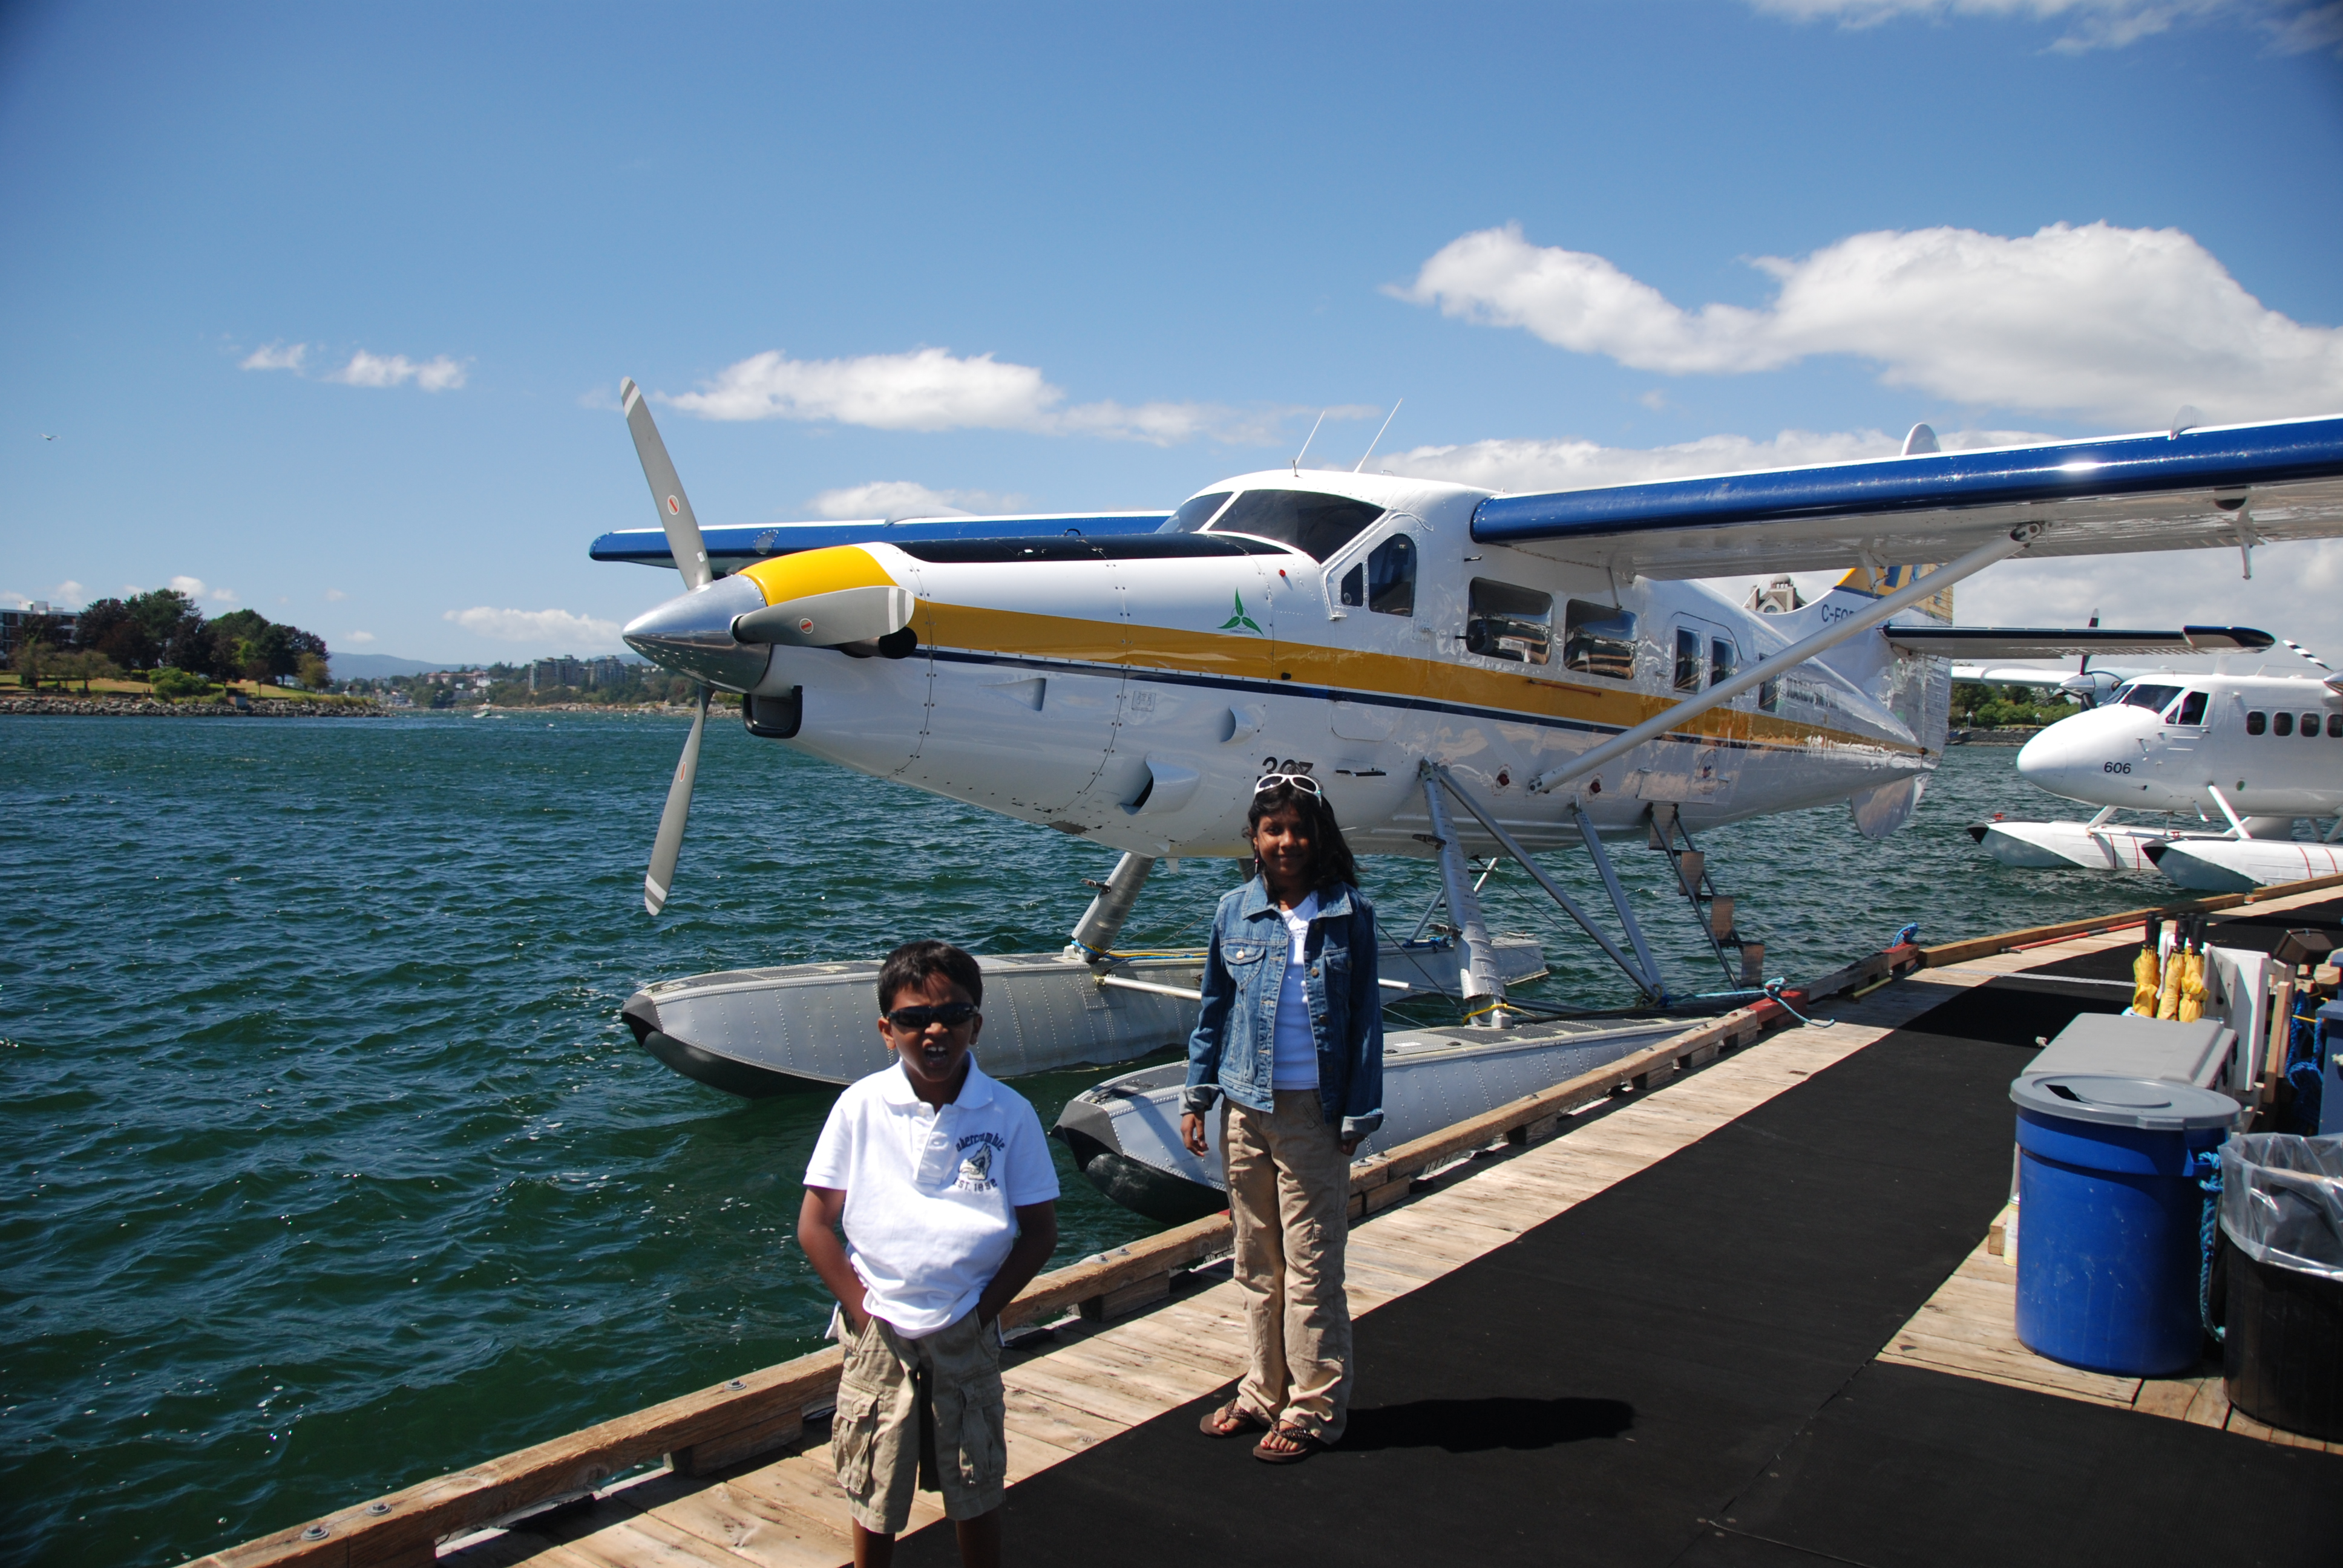 an introduction to seaplanes Seaplane definition: 1 an aircraft that can take off from and land on water2 an  aircraft that can land on and take off from water learn more.